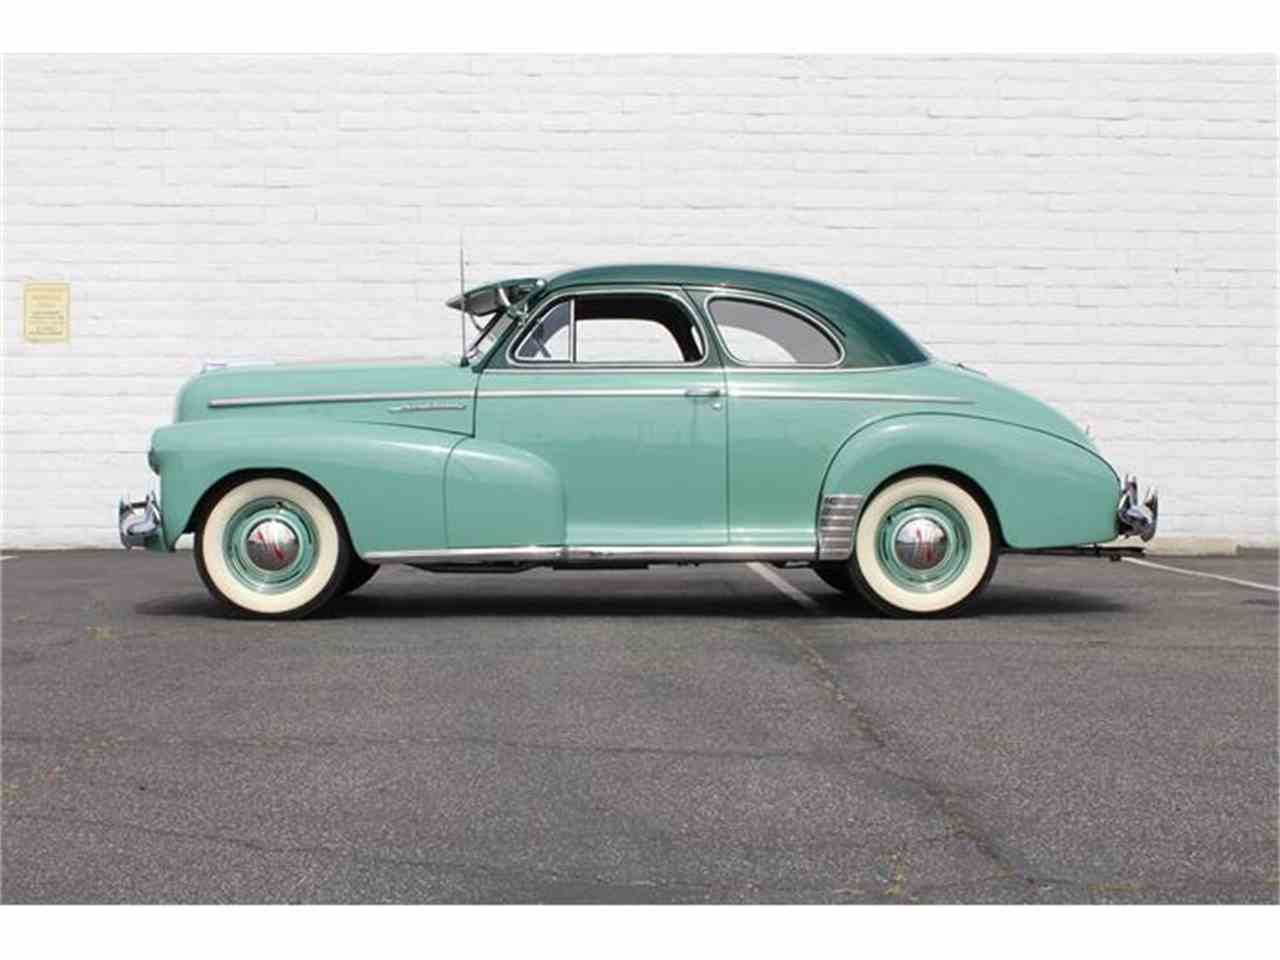 Large Picture of Classic 1942 Chevrolet Special Deluxe located in California - $43,500.00 - IZ3I